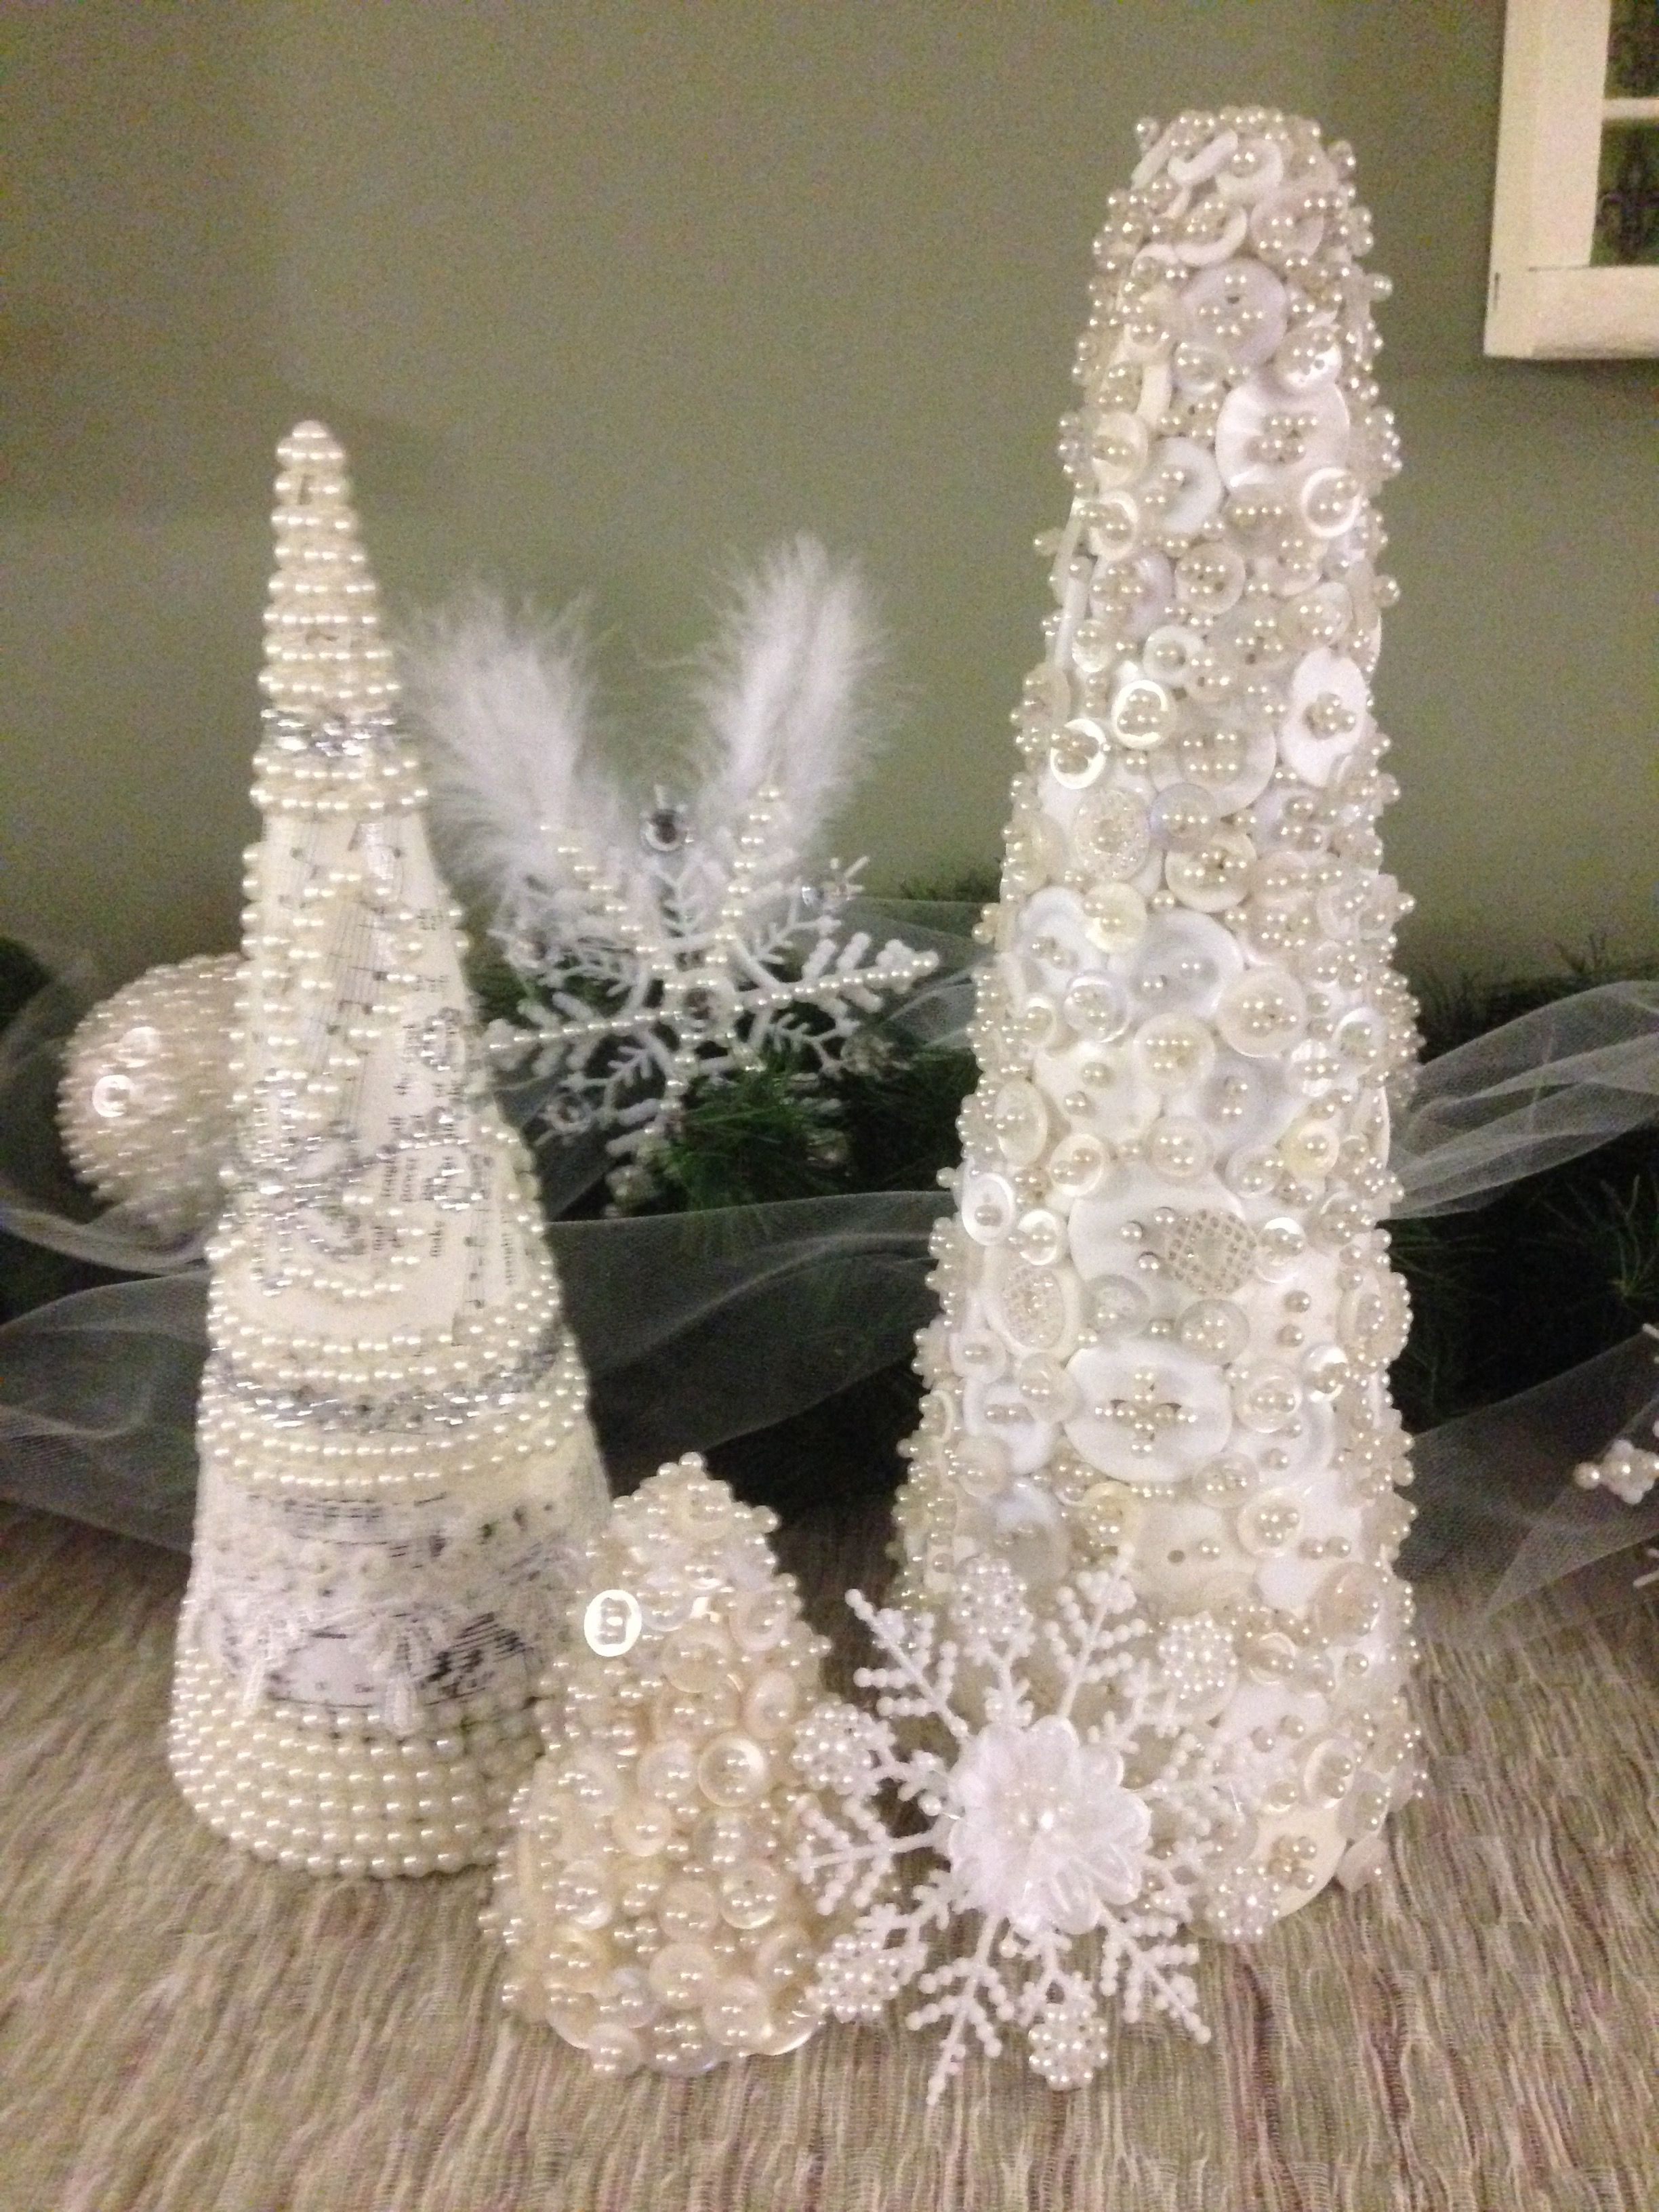 Button trees - Styrofoam tree forms from Michaels covered in pearly